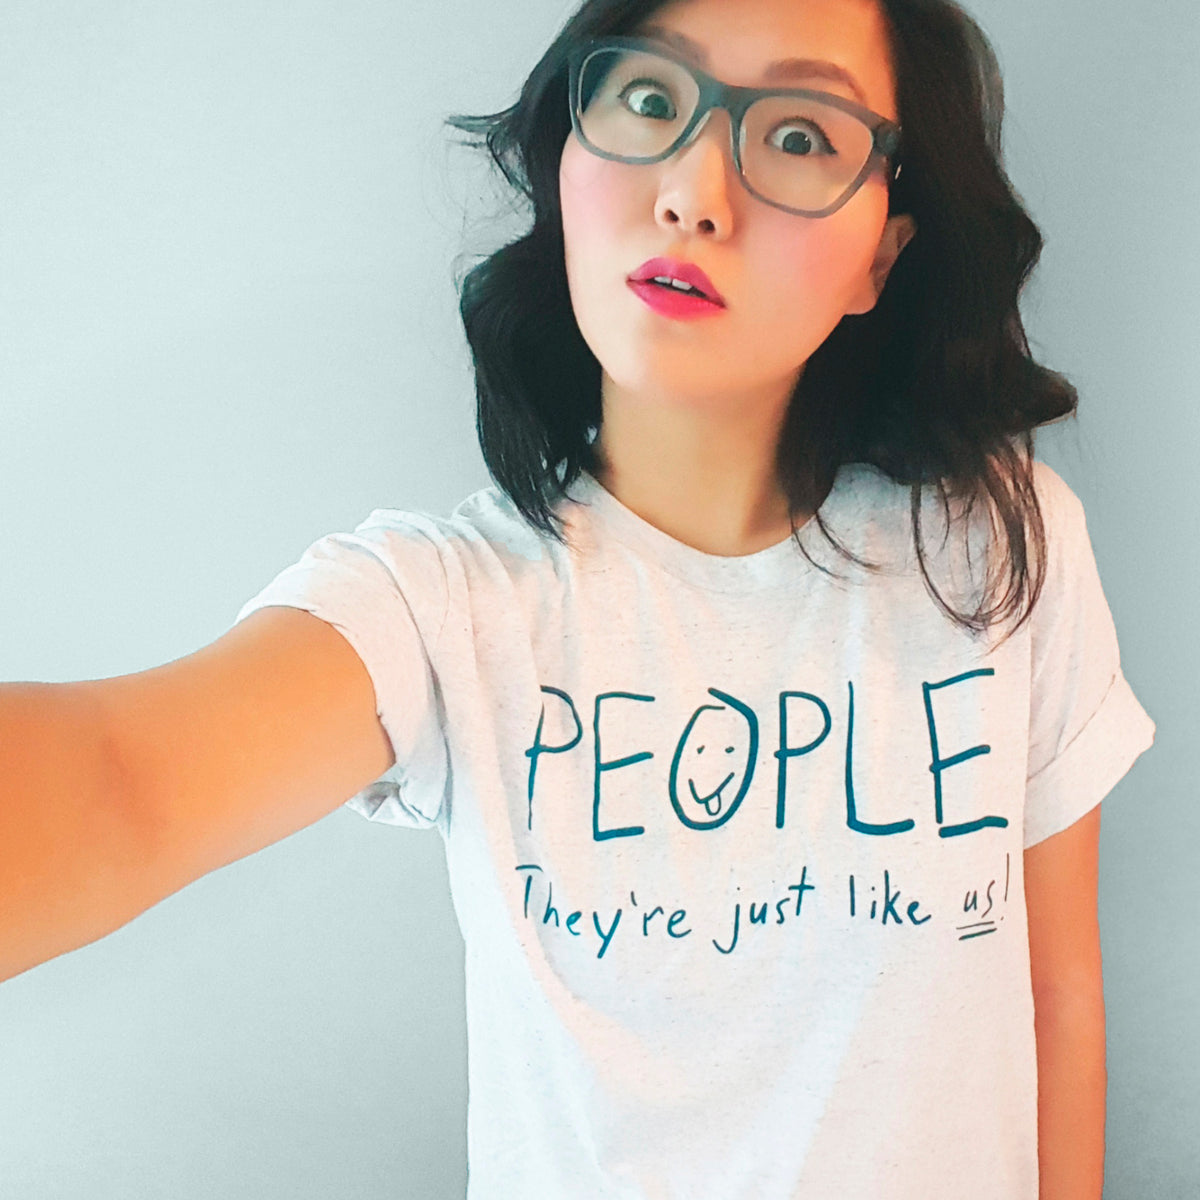 People. They're just like us! ~ Screen printed t-shirt by My Cat Is People.